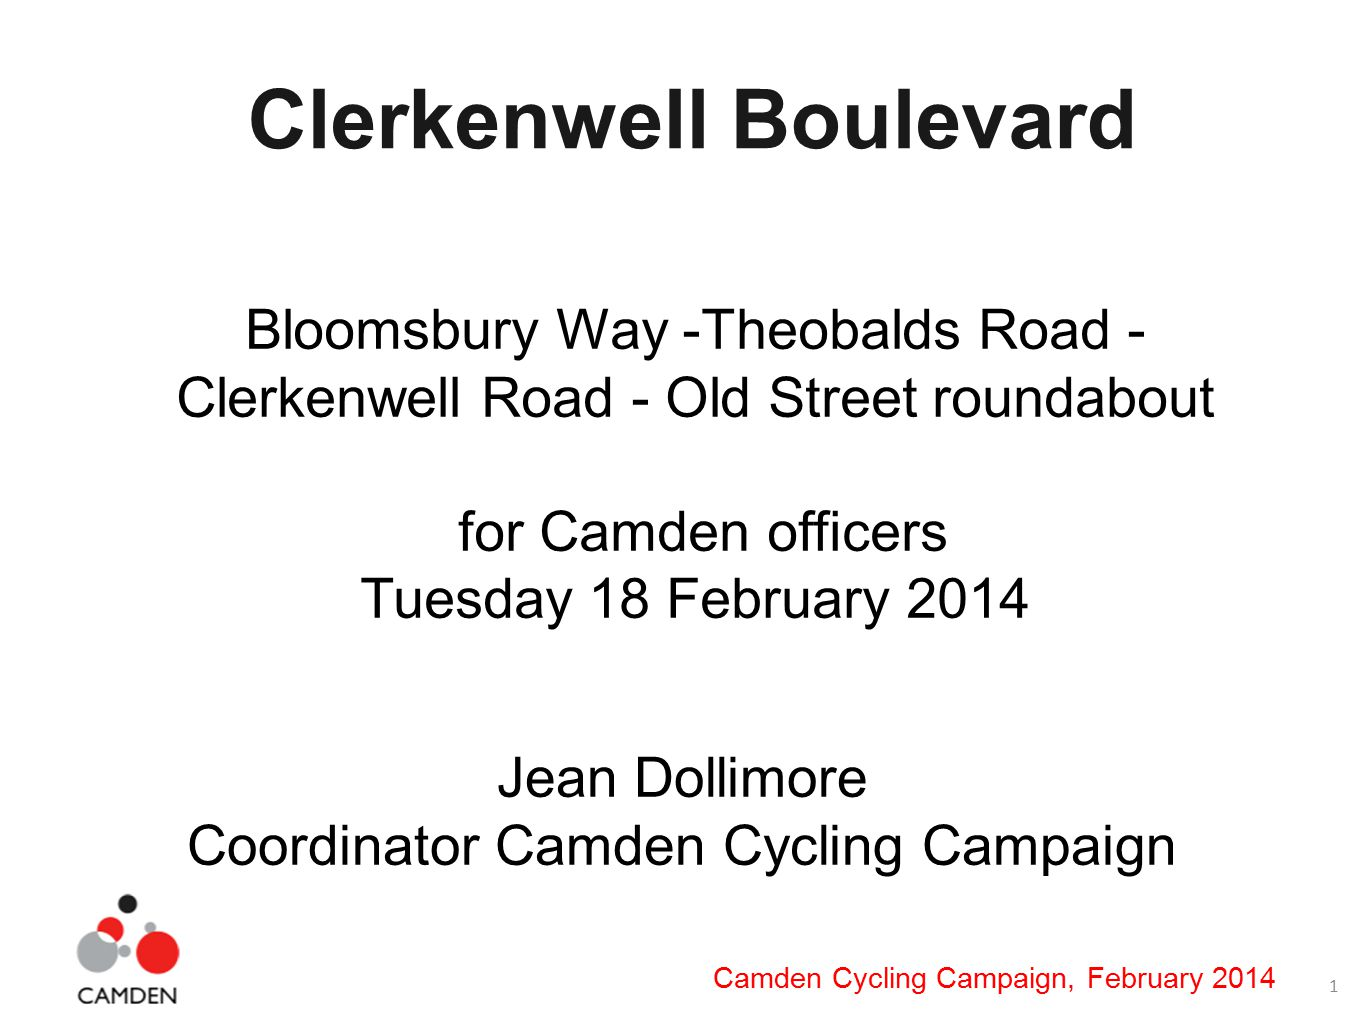 1 Camden Cycling Campaign, February 2014 Clerkenwell Boulevard Bloomsbury Way -Theobalds Road - Clerkenwell Road - Old Street roundabout for Camden officers Tuesday 18 February 2014 Jean Dollimore Coordinator Camden Cycling Campaign